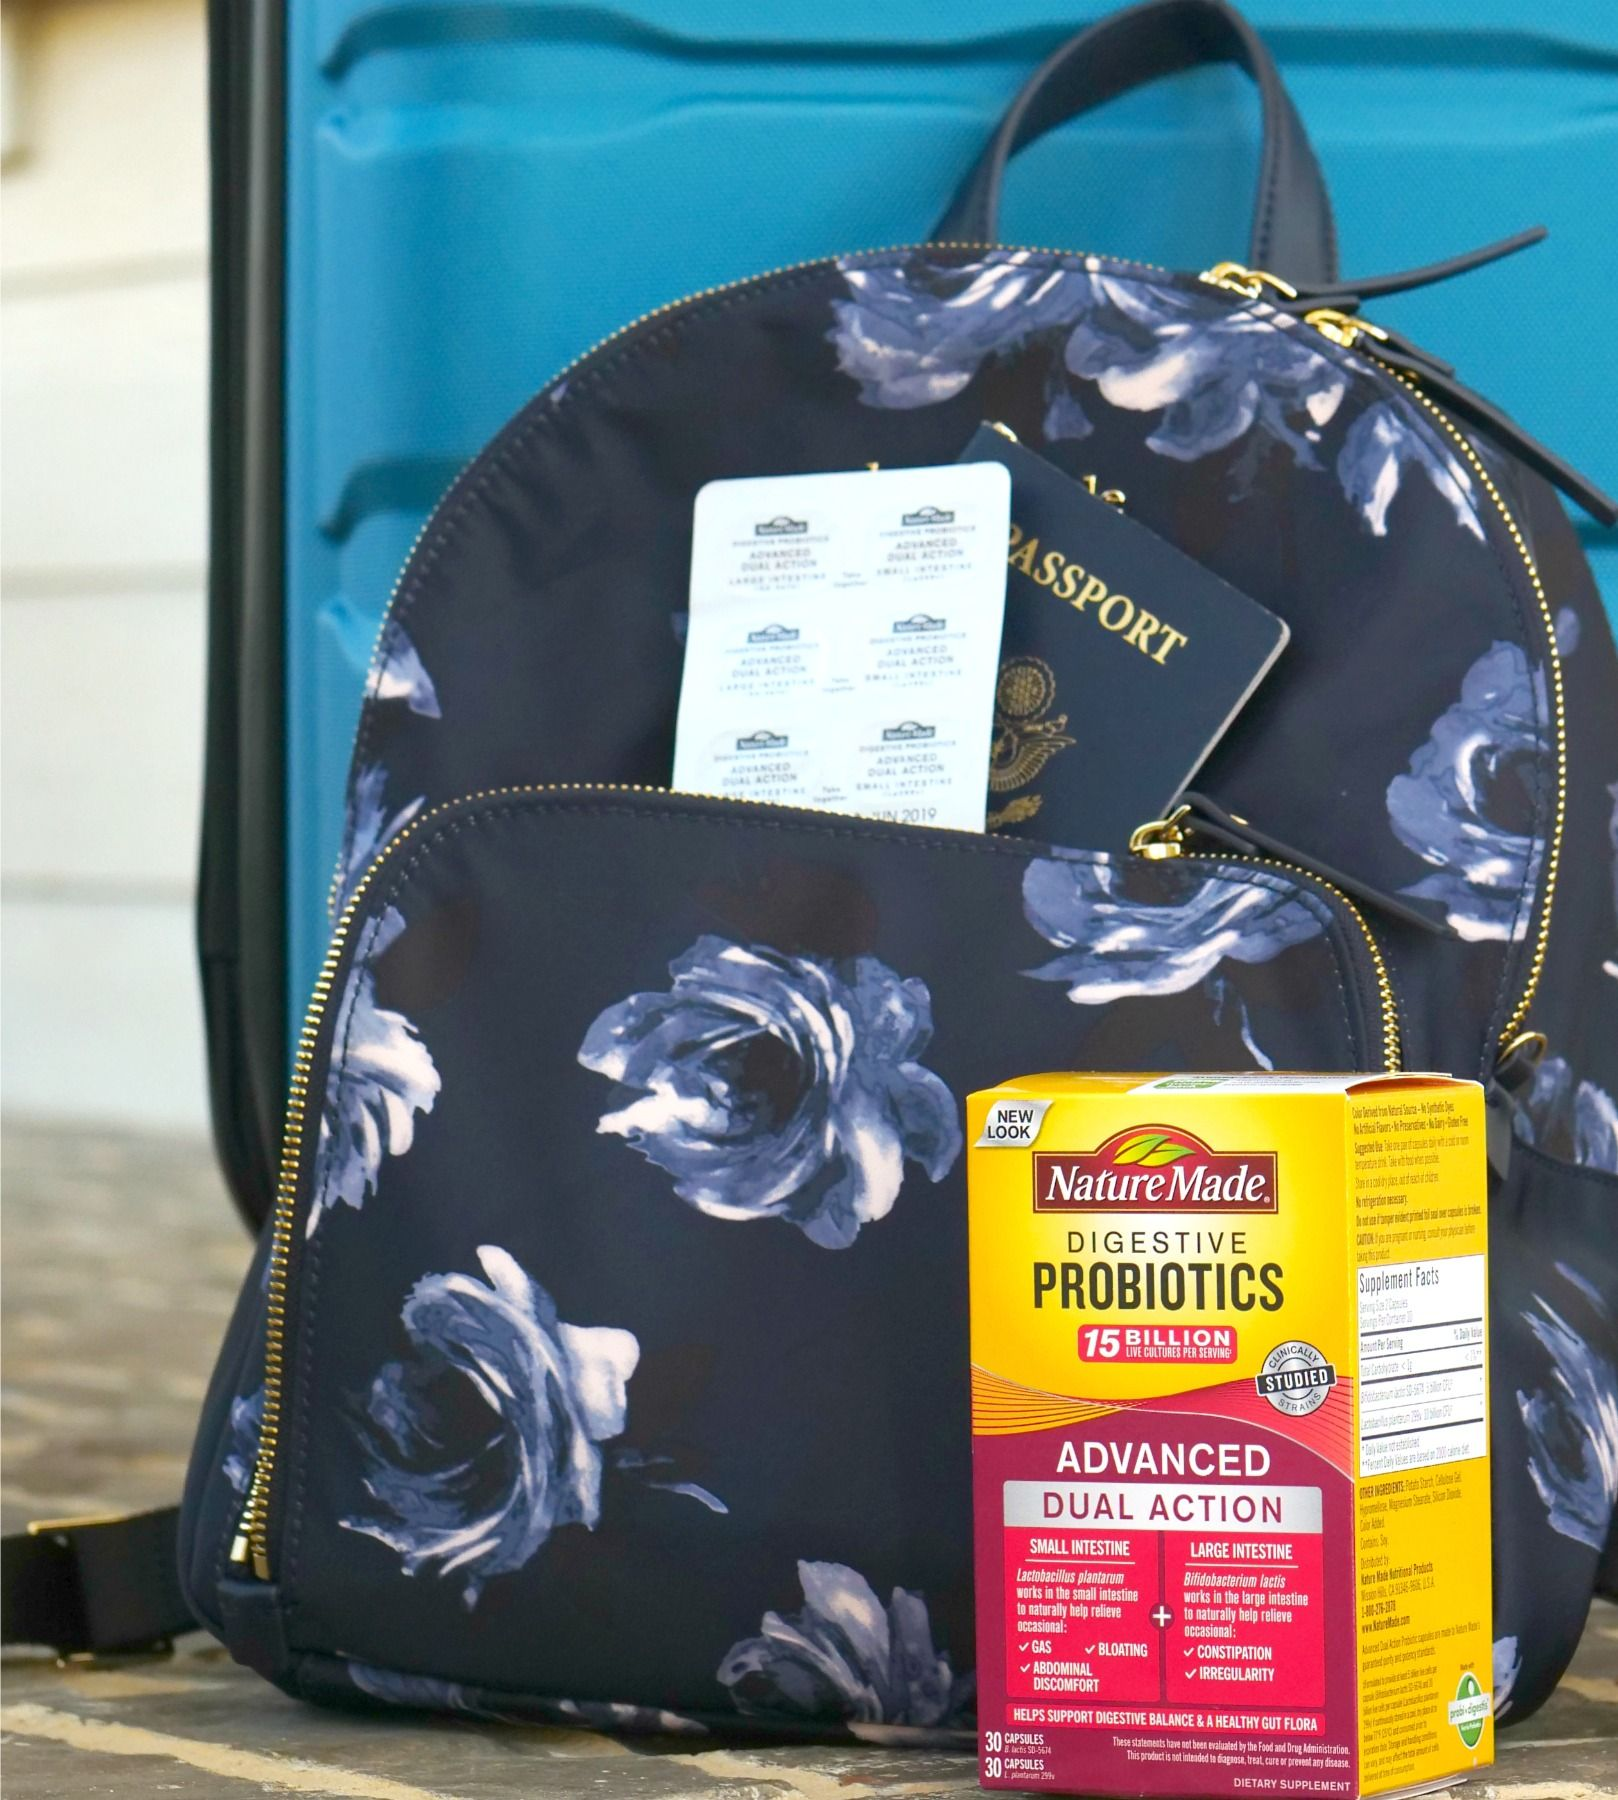 Easy More Comprehensive: My Favorite Bag For Travel Is A Backpack. It Keeps My